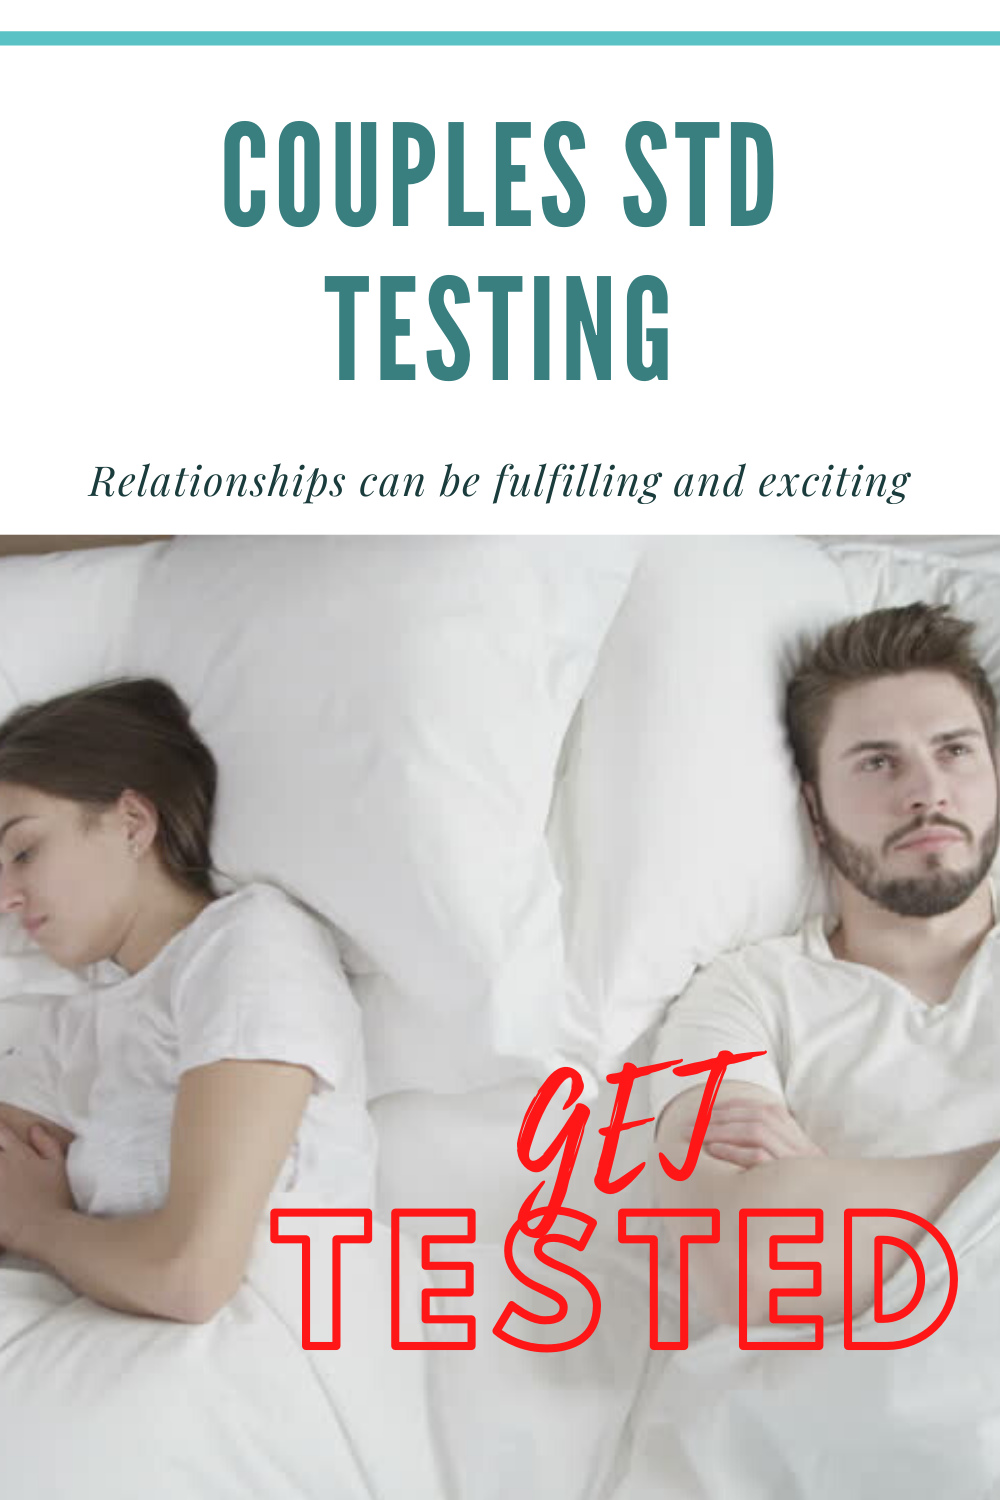 Get Couple STD Testing in 2020 (With images) Couples